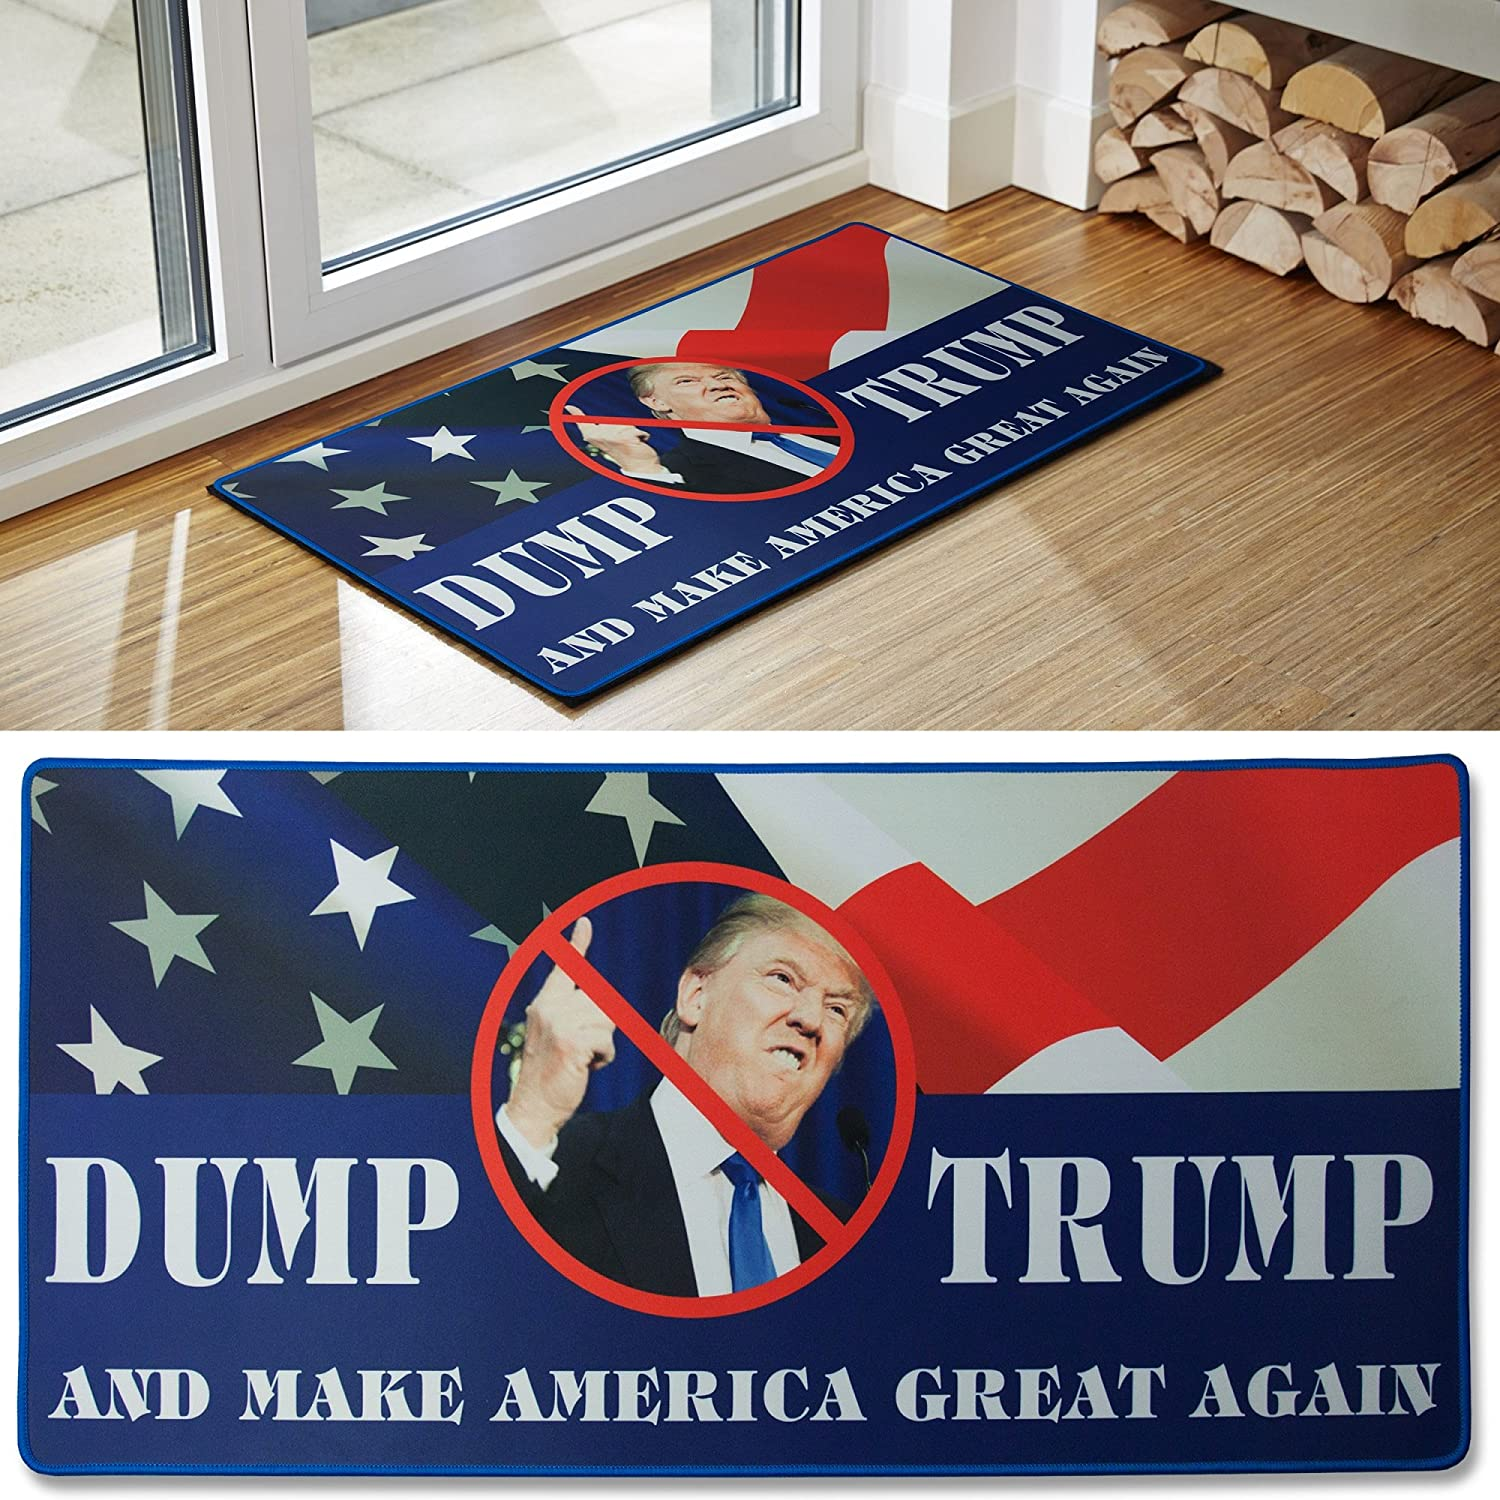 Donald trump novelty doormat includes free dump trump bumper sticker funny political gag gift for democrats republicans from the maker of the best